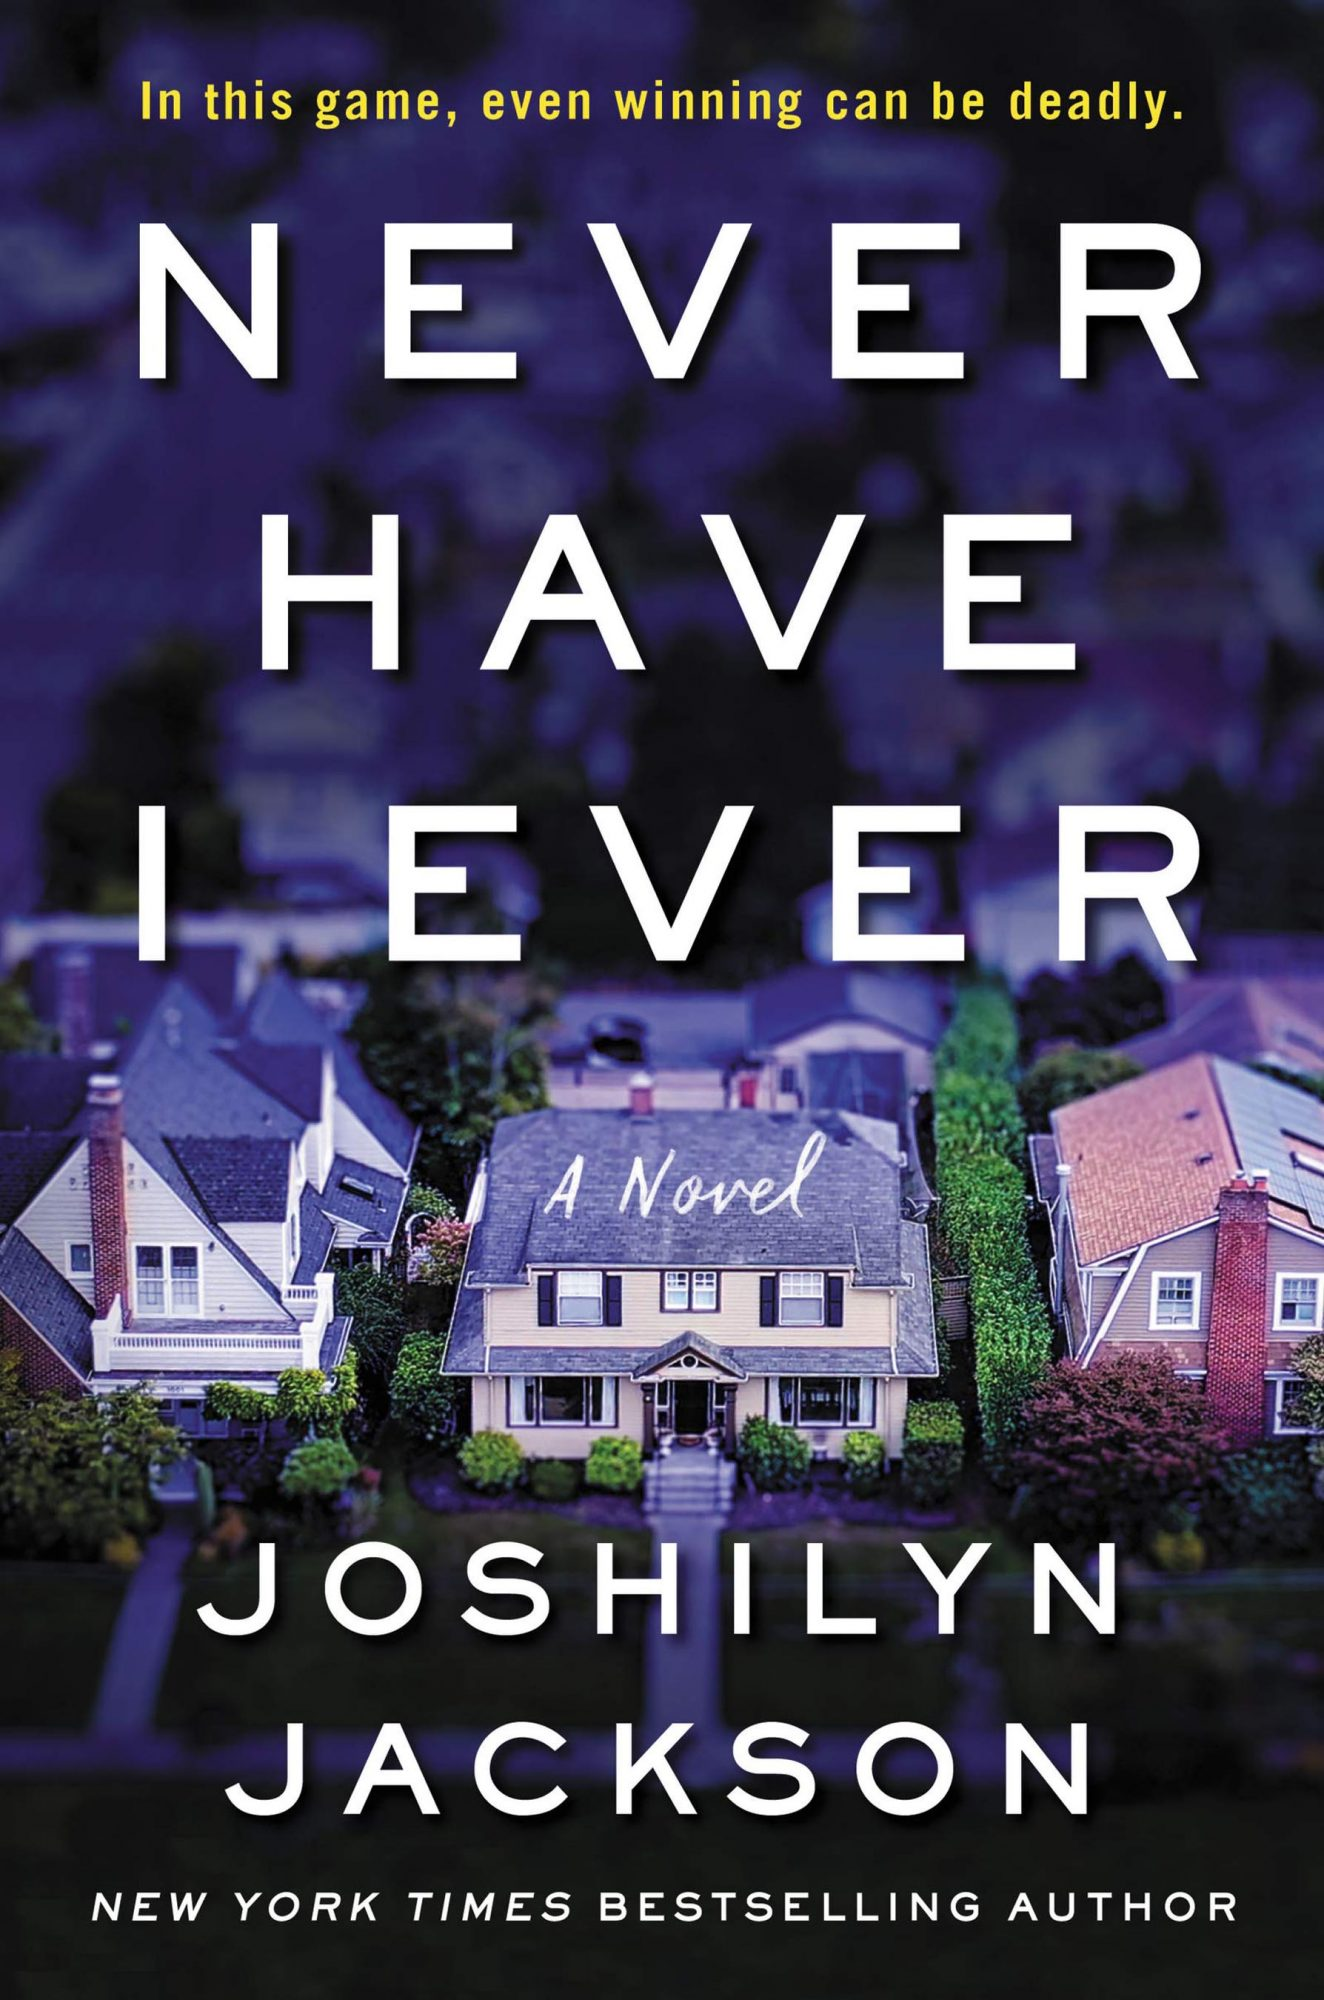 Never Have I Ever (2019)Author: Joshilyn Jackson